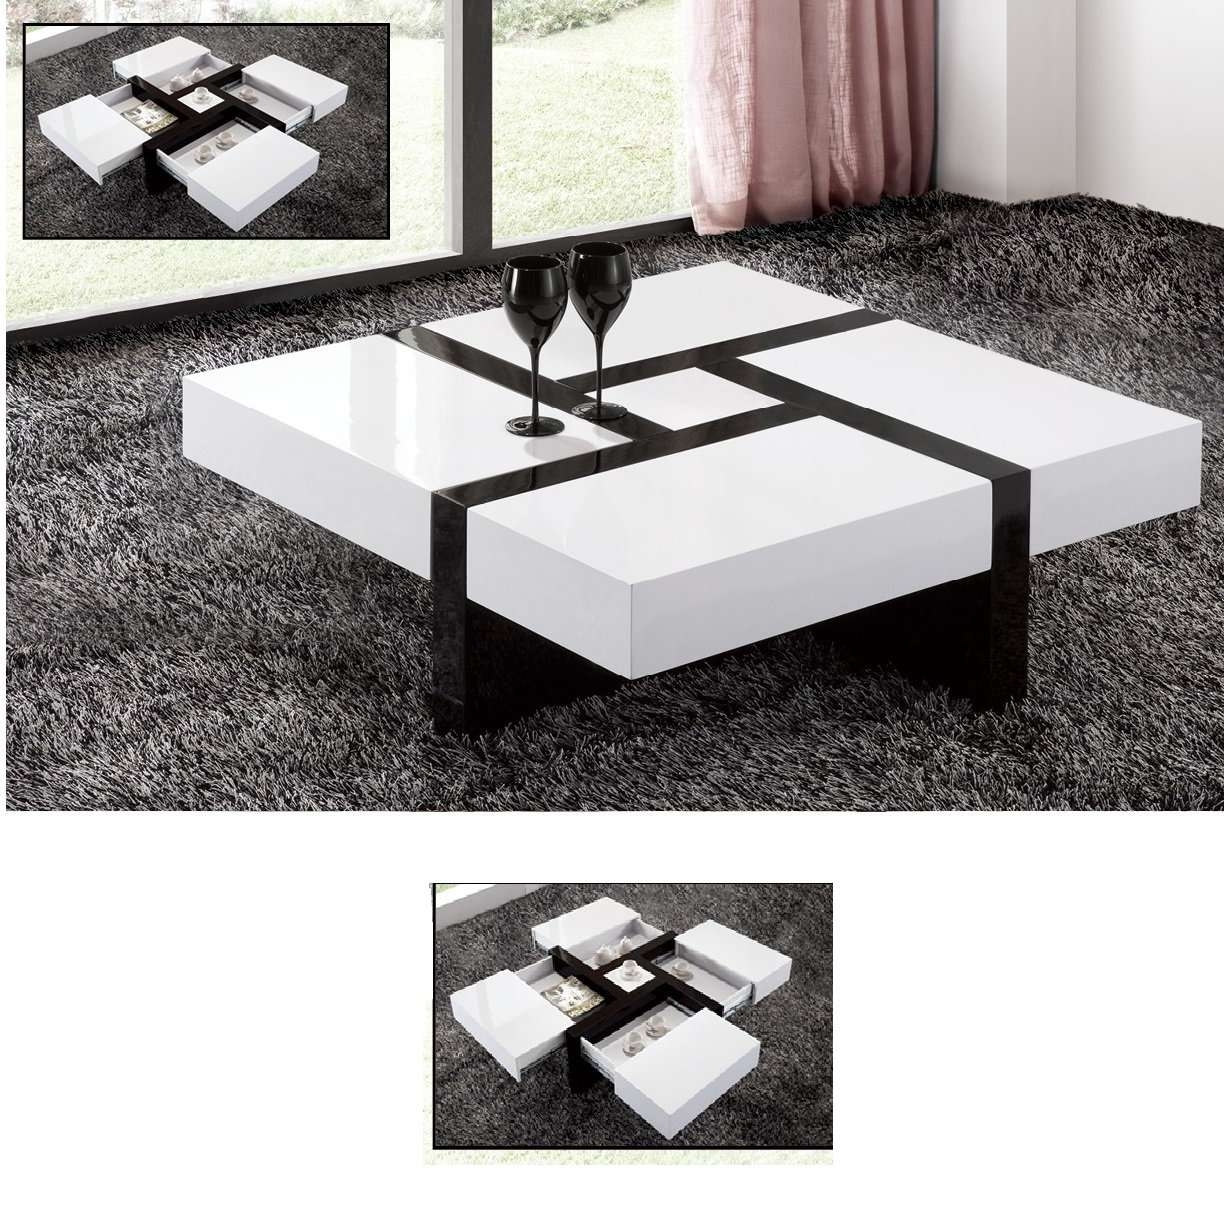 Famous High Gloss Coffee Tables Intended For Extendable High Gloss Coffee Table – Fif Blog (View 4 of 20)